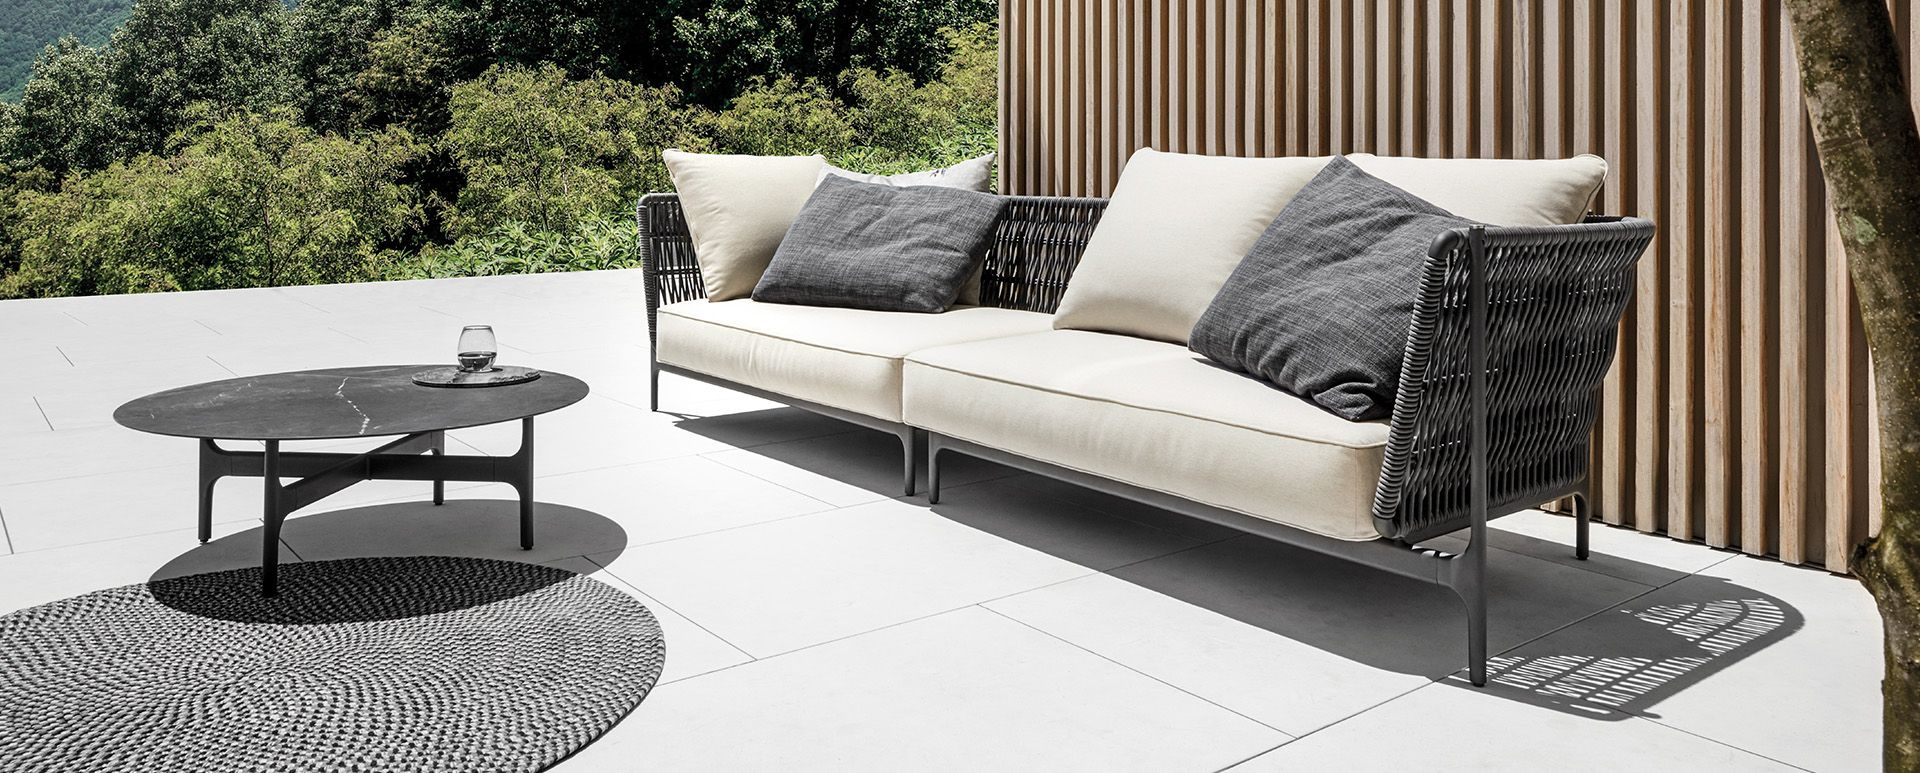 Gloster - Grand Weave | Apanemi Outdoor | Pinterest